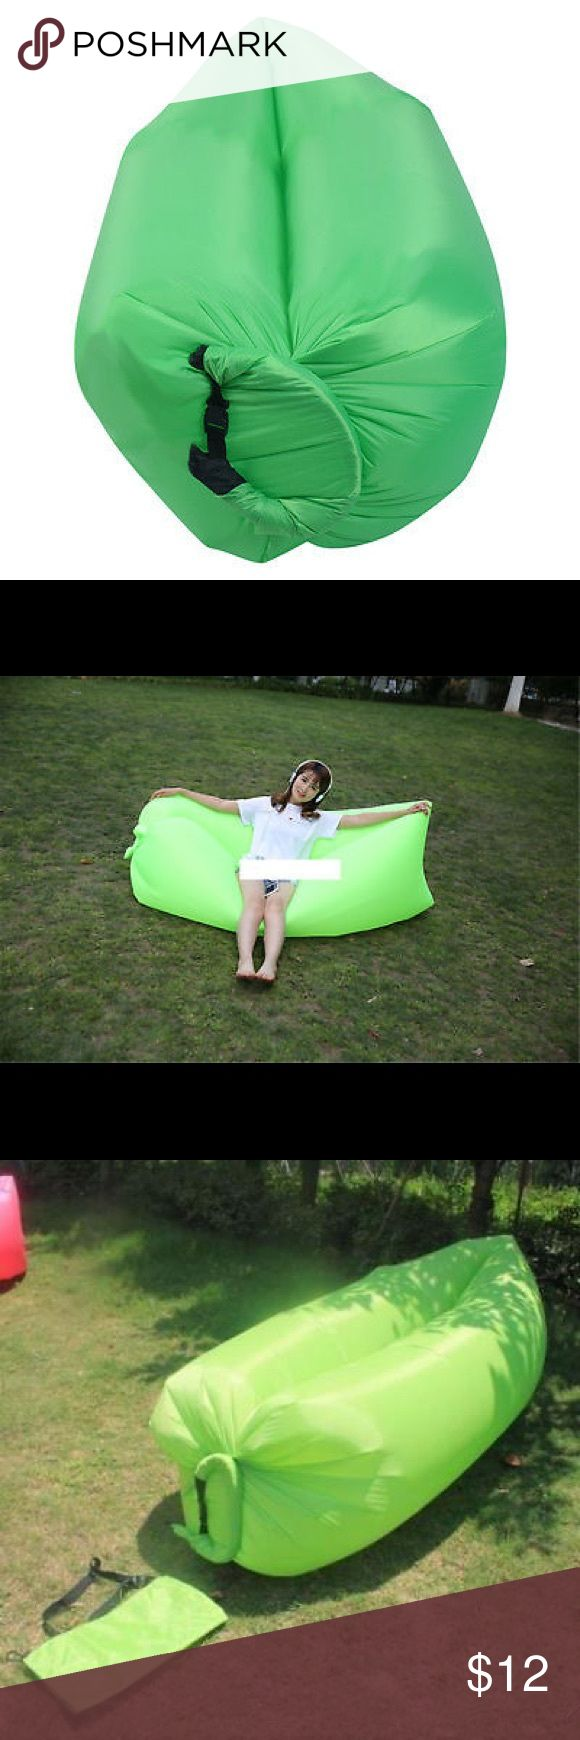 Inflatable Air Sofa Bed Lazy Sleeping Camping Bag New Inflatable Air Sofa Bed Lazy Sleeping Camping Bag Beach Hangout Couch - Brand new and high quality - Fully waterproof so it can also be taken into the pool or the sea - Whether you are preparing for this year's festival season, your holidays, camping, picnics, the list goes on, or just for lounging at home in front of the TV, you'll no doubt find a new use for it every day Other